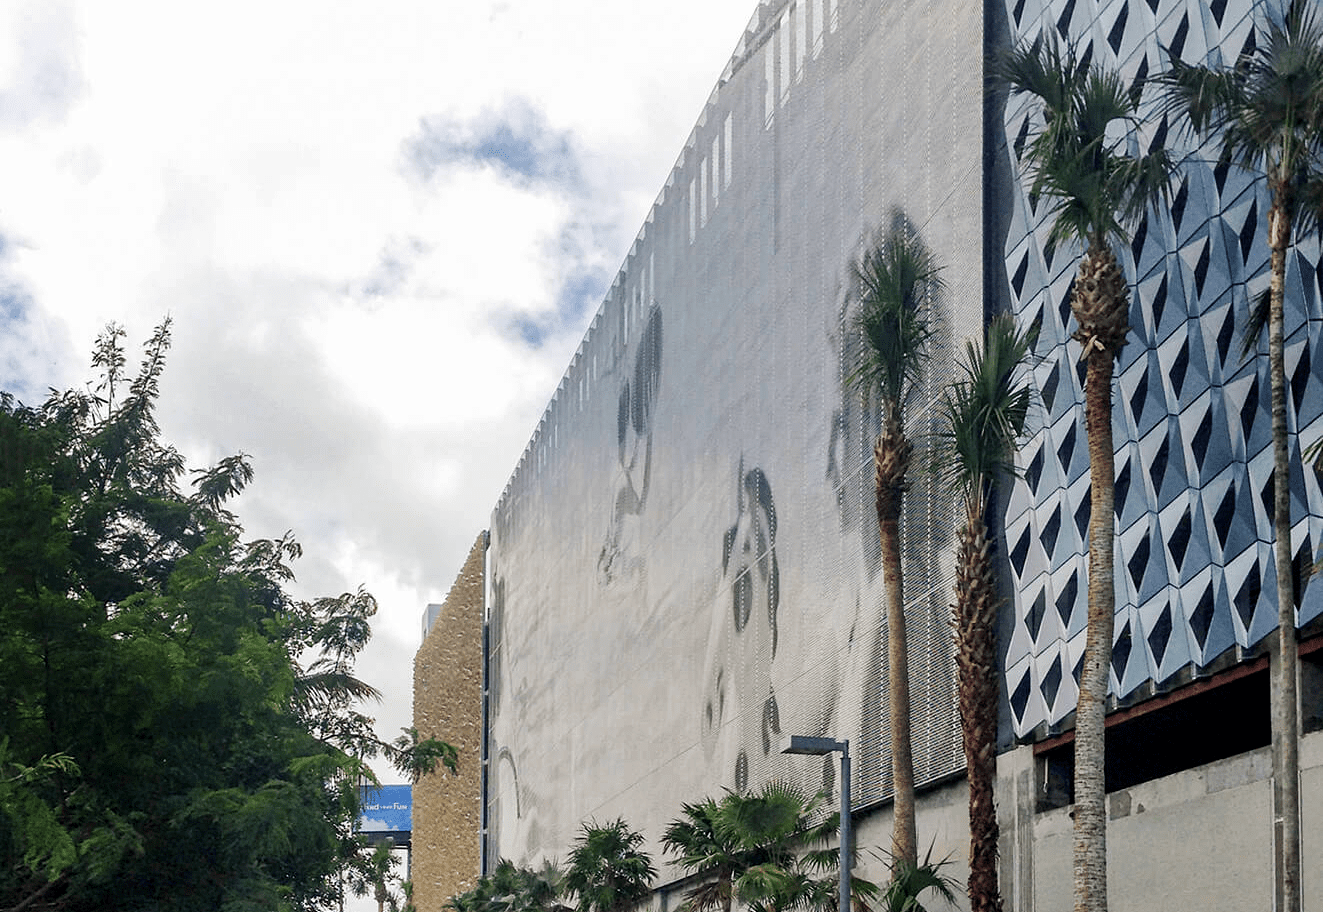 City View Garage facade designed by artist John Baldessari using Zahner Angel Hair® Stainless Steel.